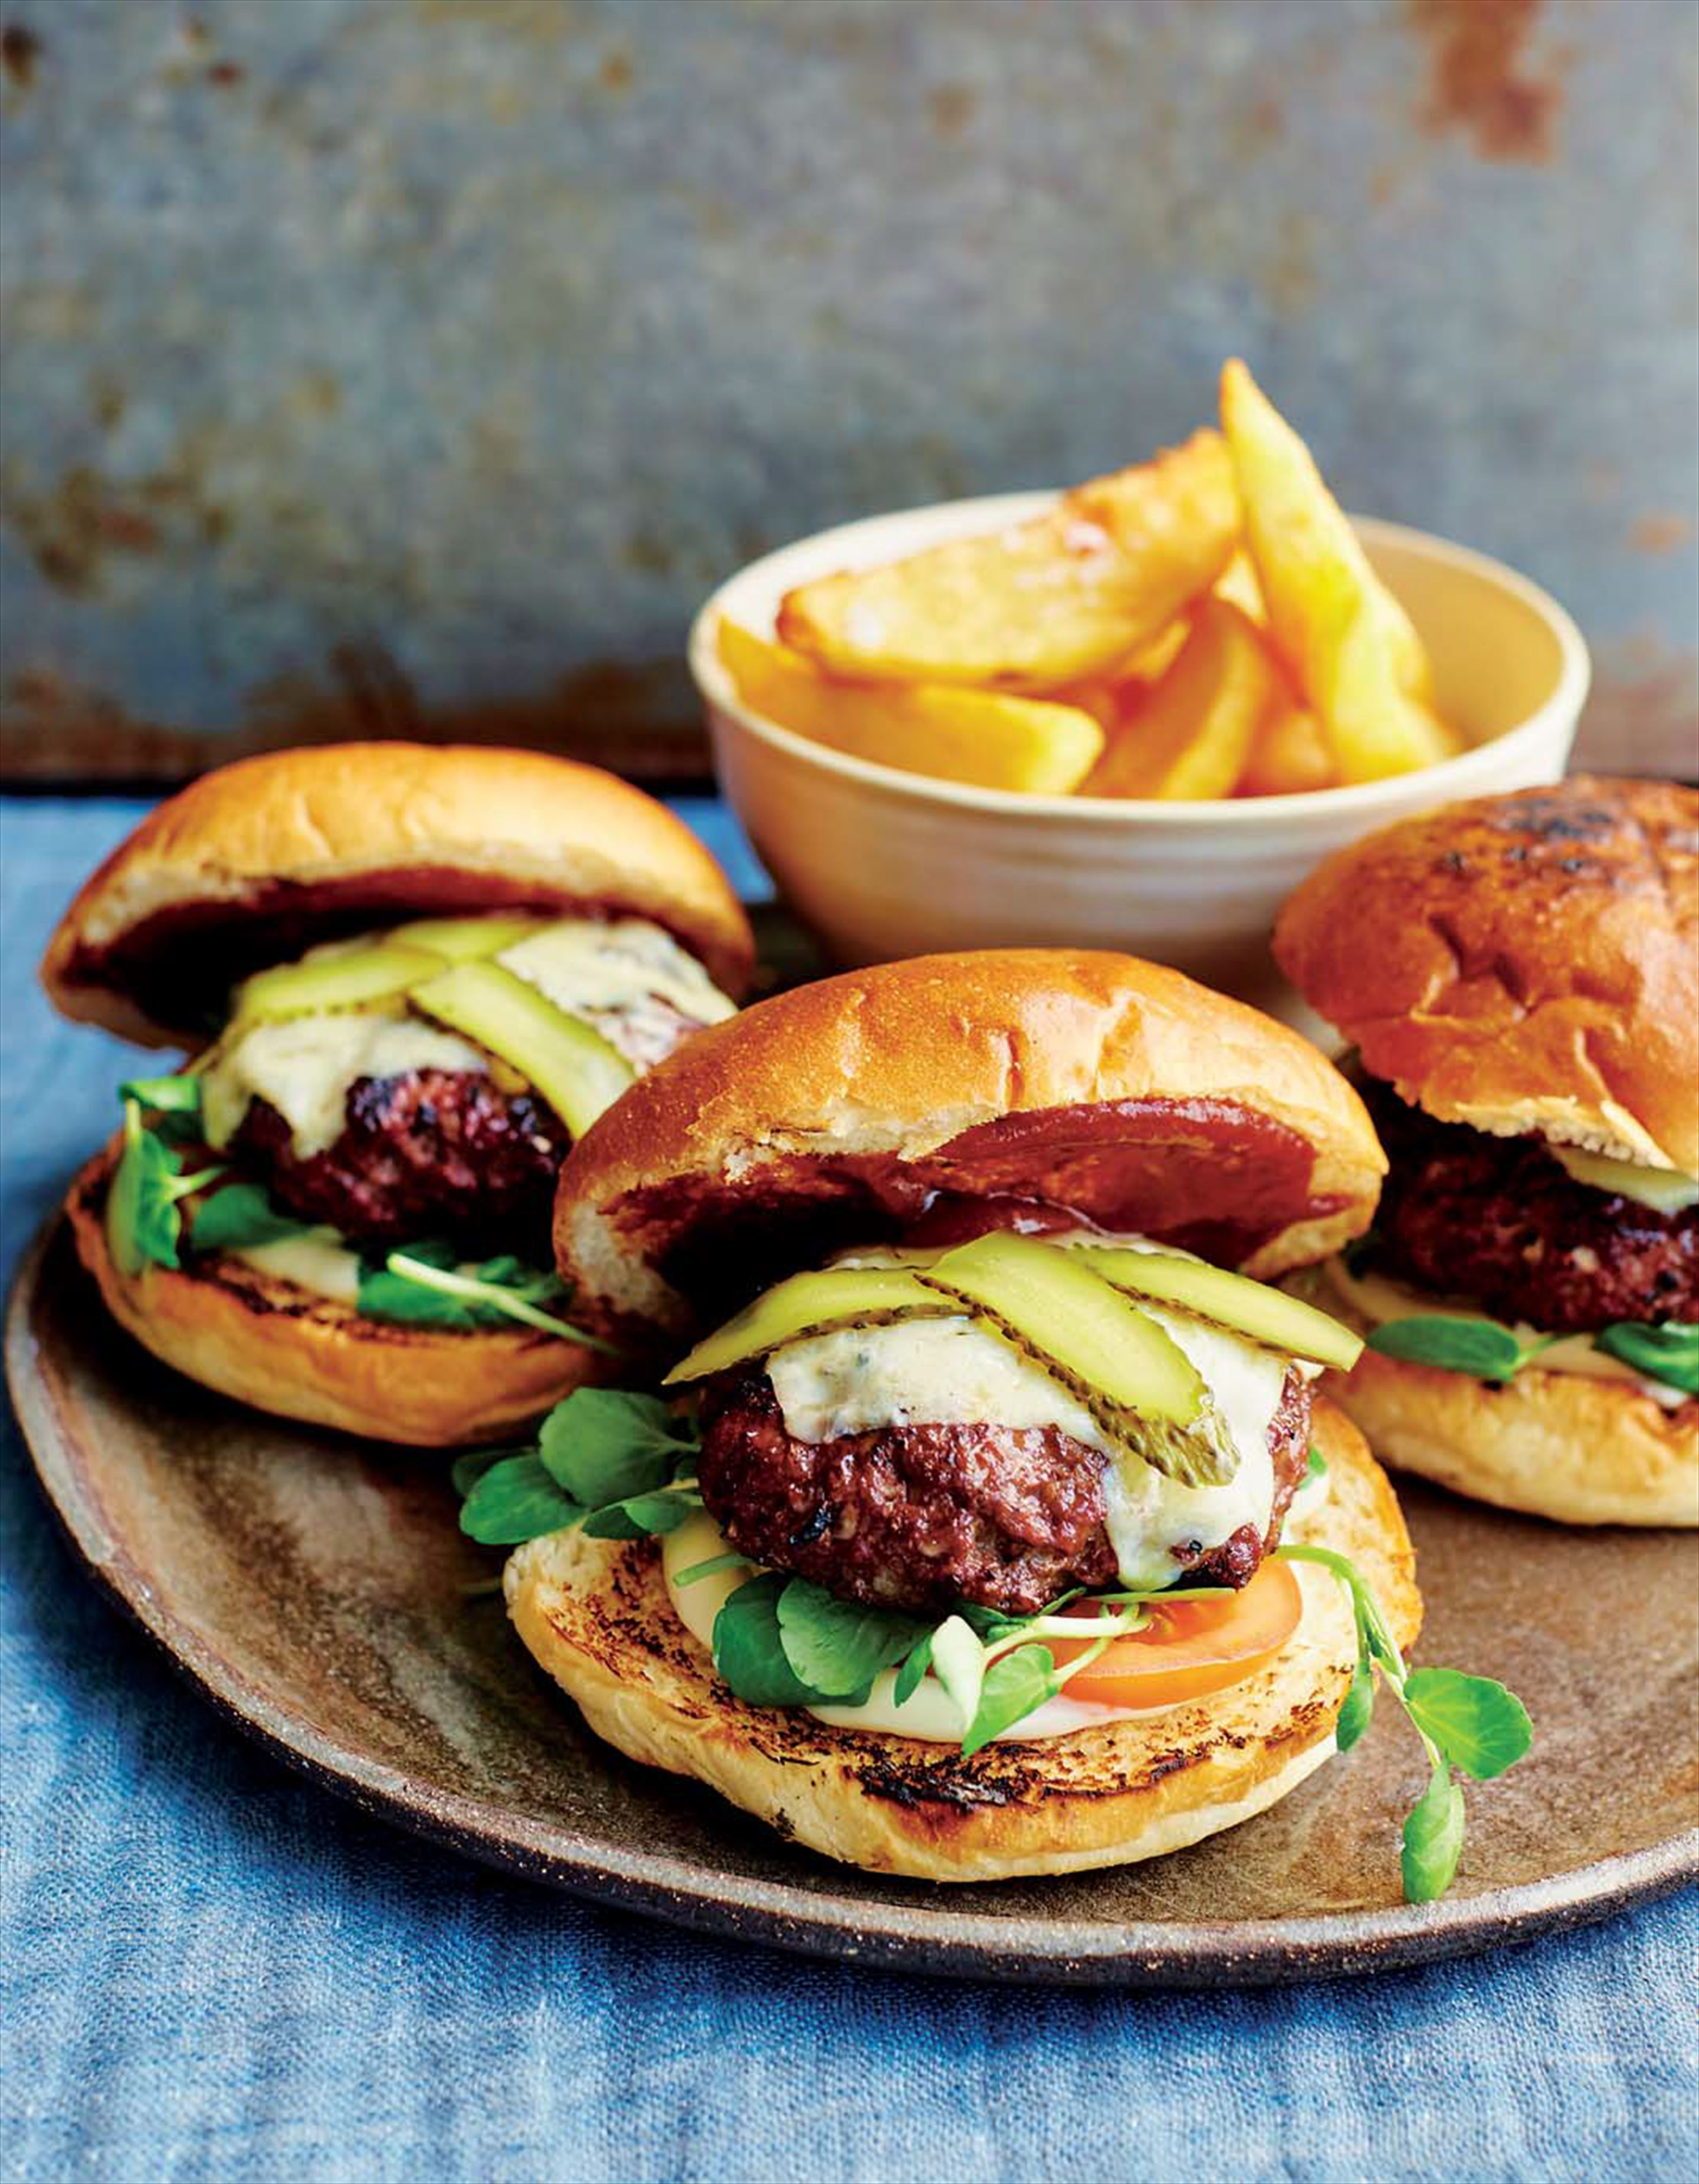 Burgers, the way we like them